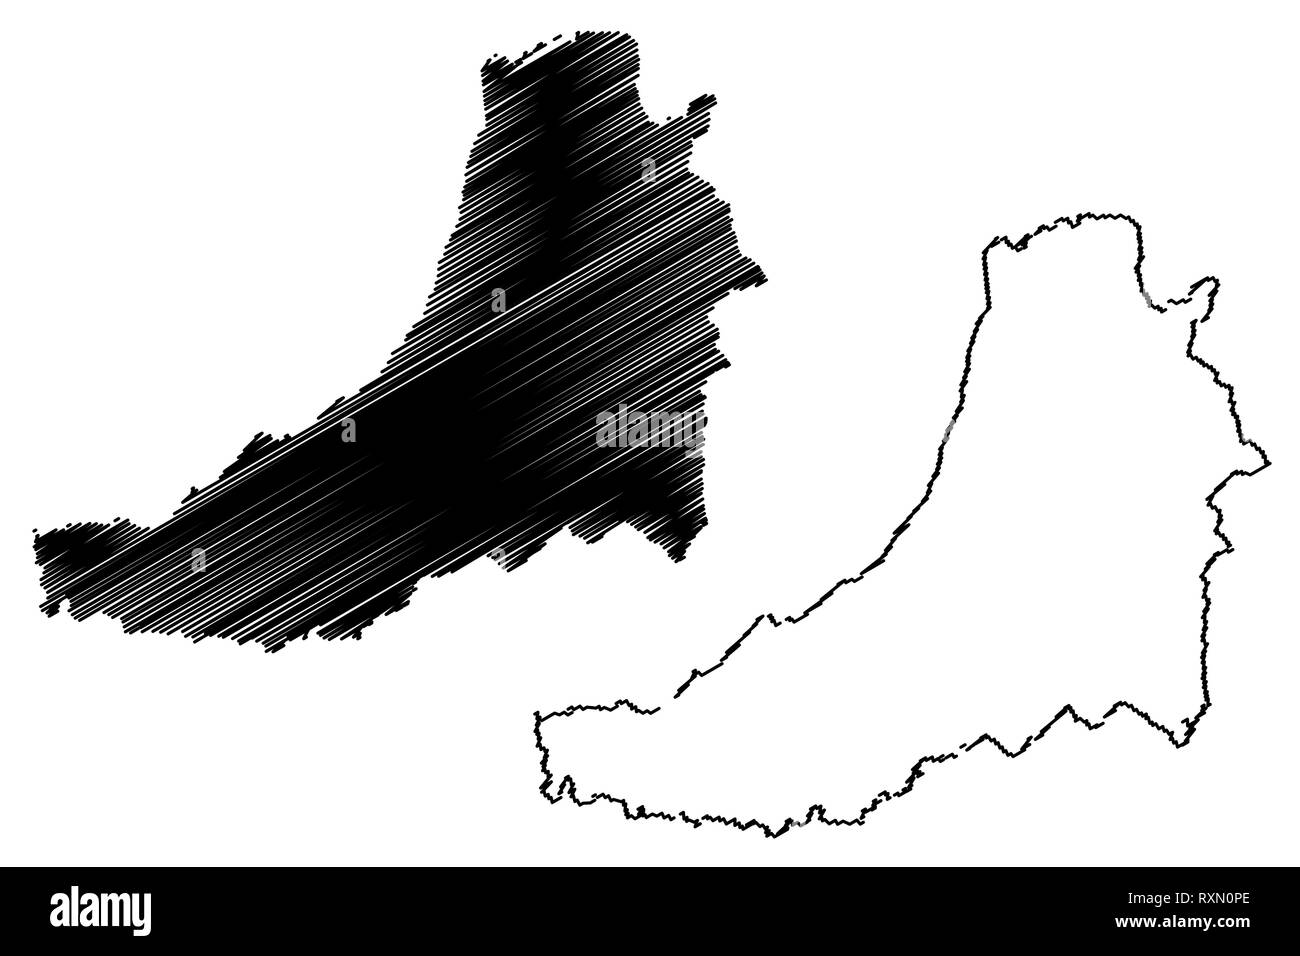 Ceredigion (United Kingdom, Wales, Cymru, Principal areas of Wales) map vector illustration, scribble sketch Cardiganshire map - Stock Image